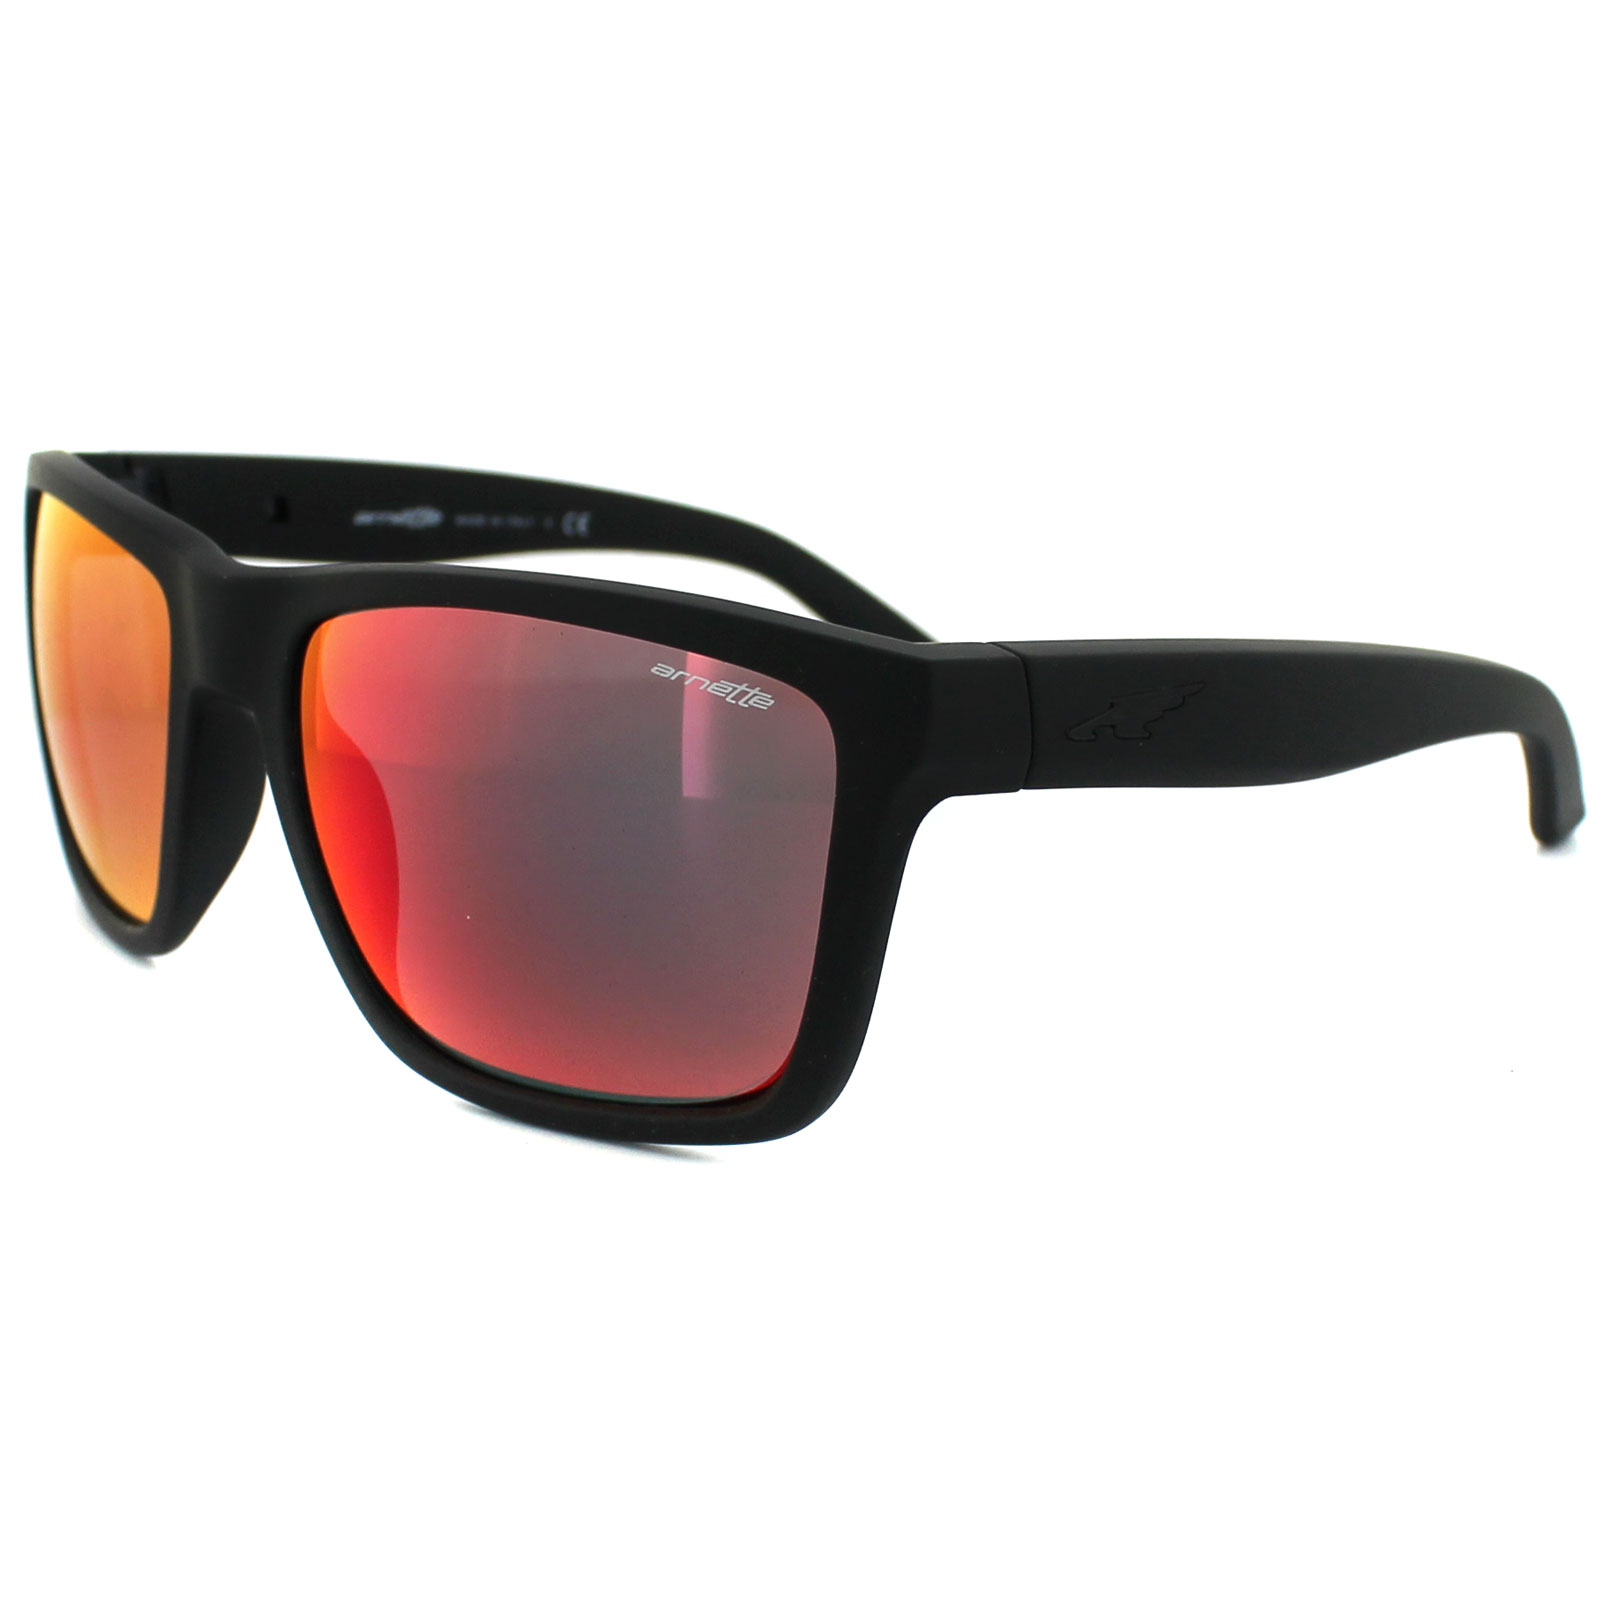 Arnette Sunglasses 4177 Witch Doctor 447/6Q Fuzzy Black ...